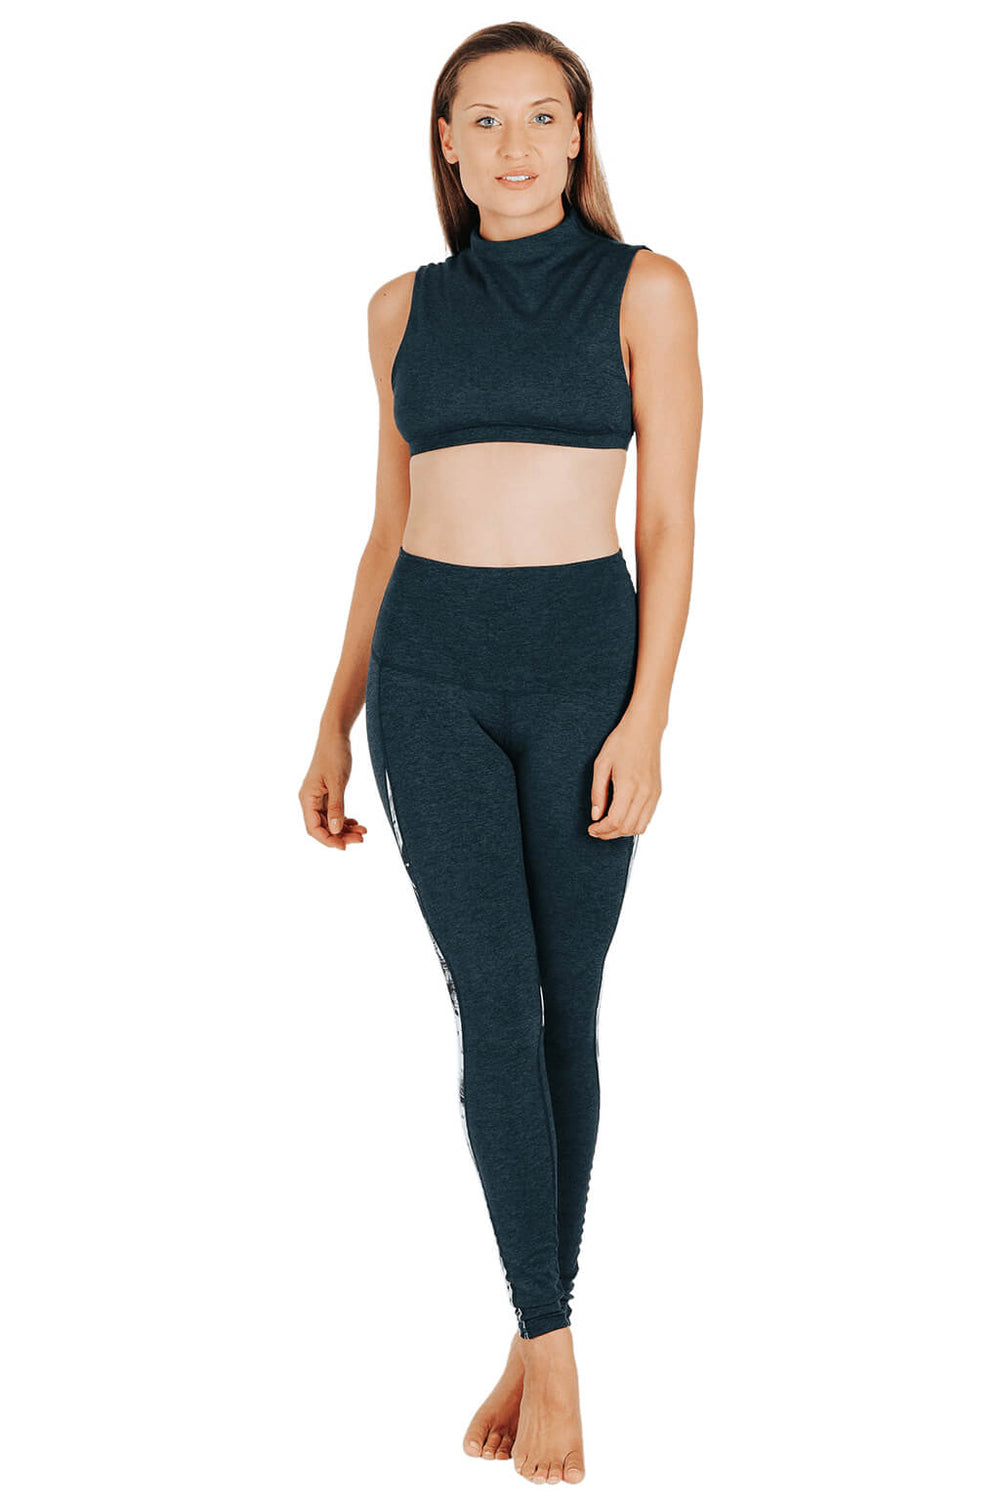 Yoga Leggings by Yogavated Athletic Apparel Electrify Key Legging